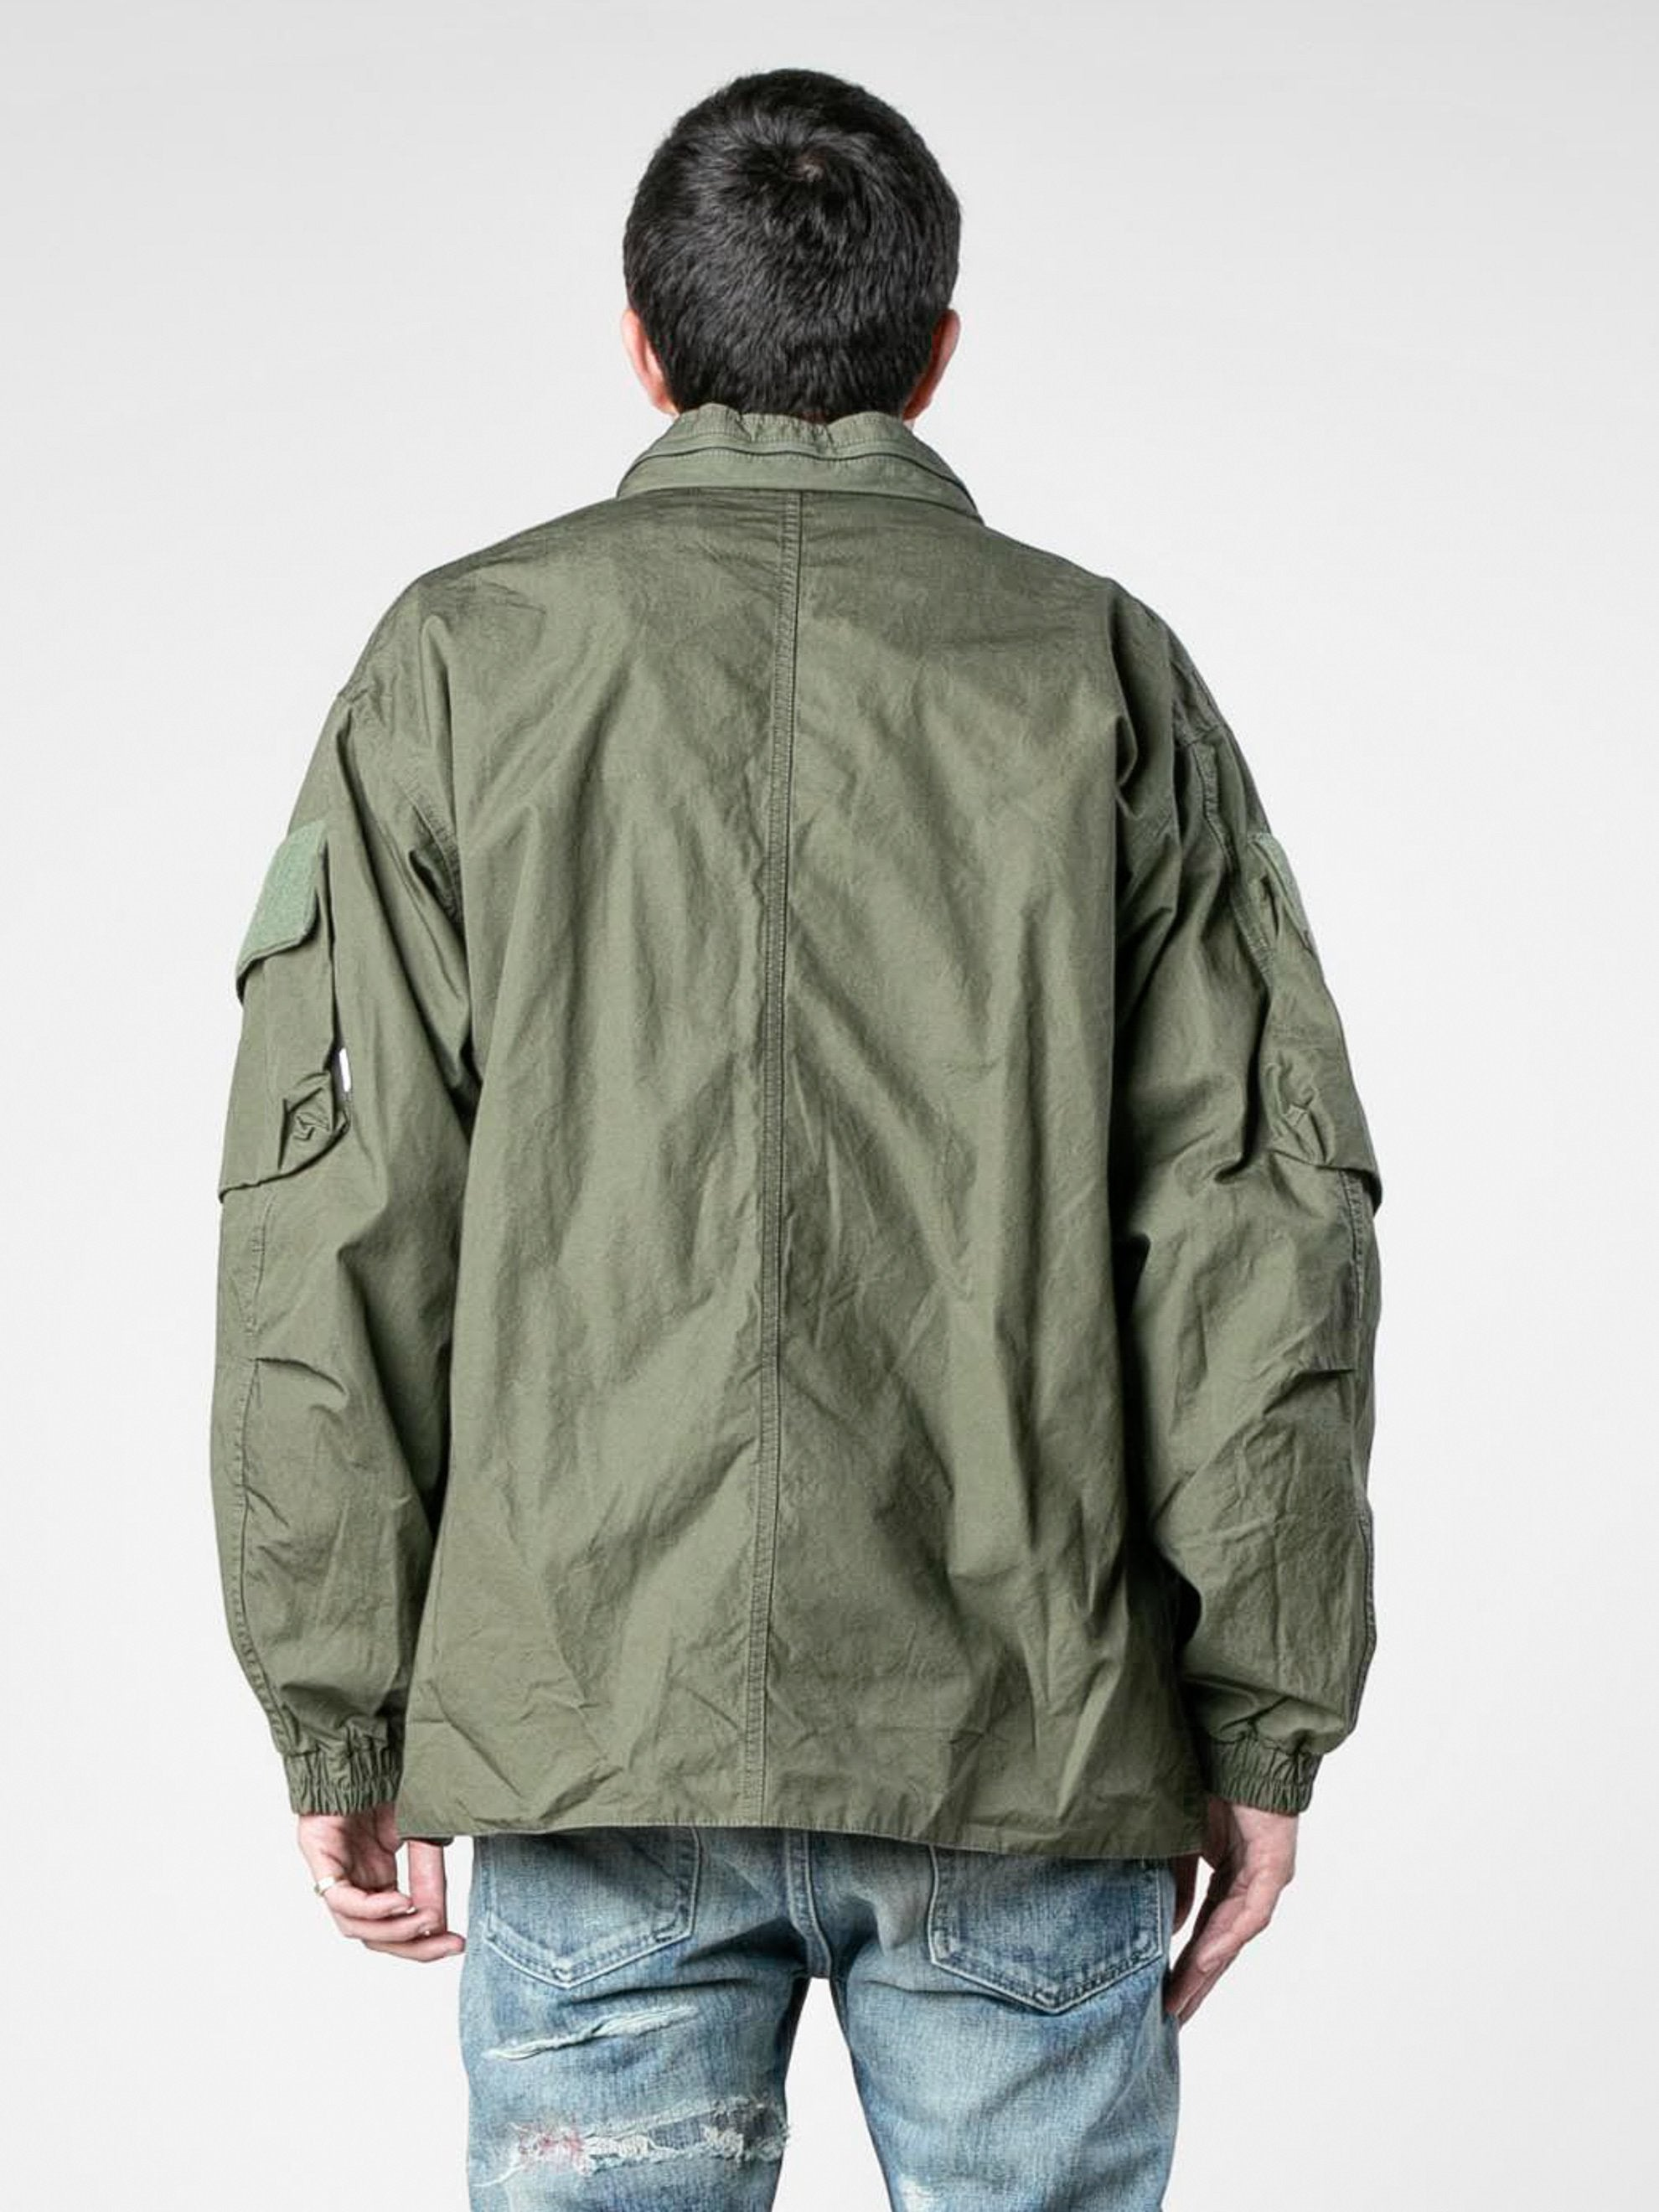 Olive Drab Modular / Jacket. Cotton. Weather 6